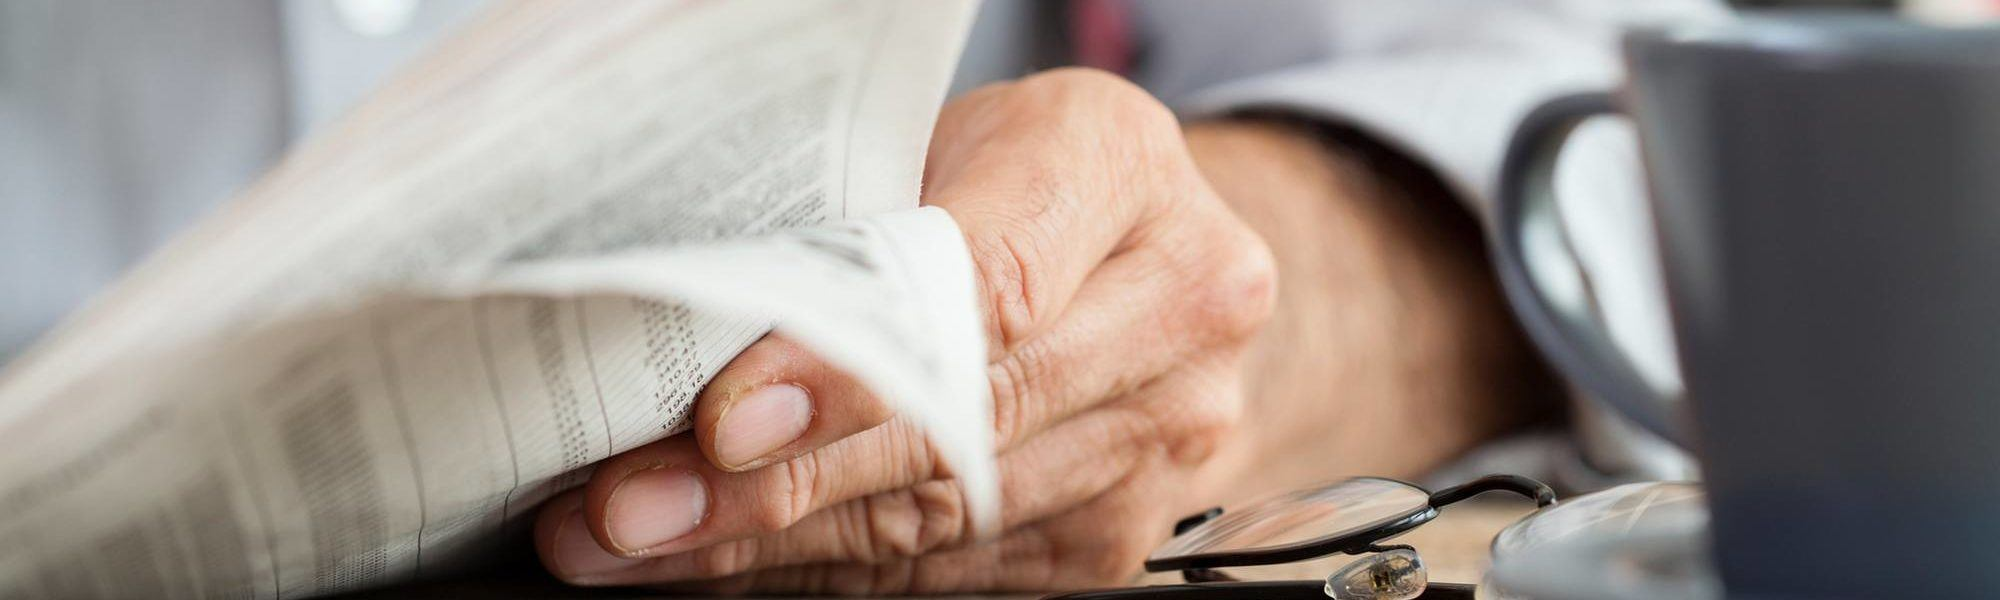 Hand holding the newspaper resting on a table with a cup of coffee